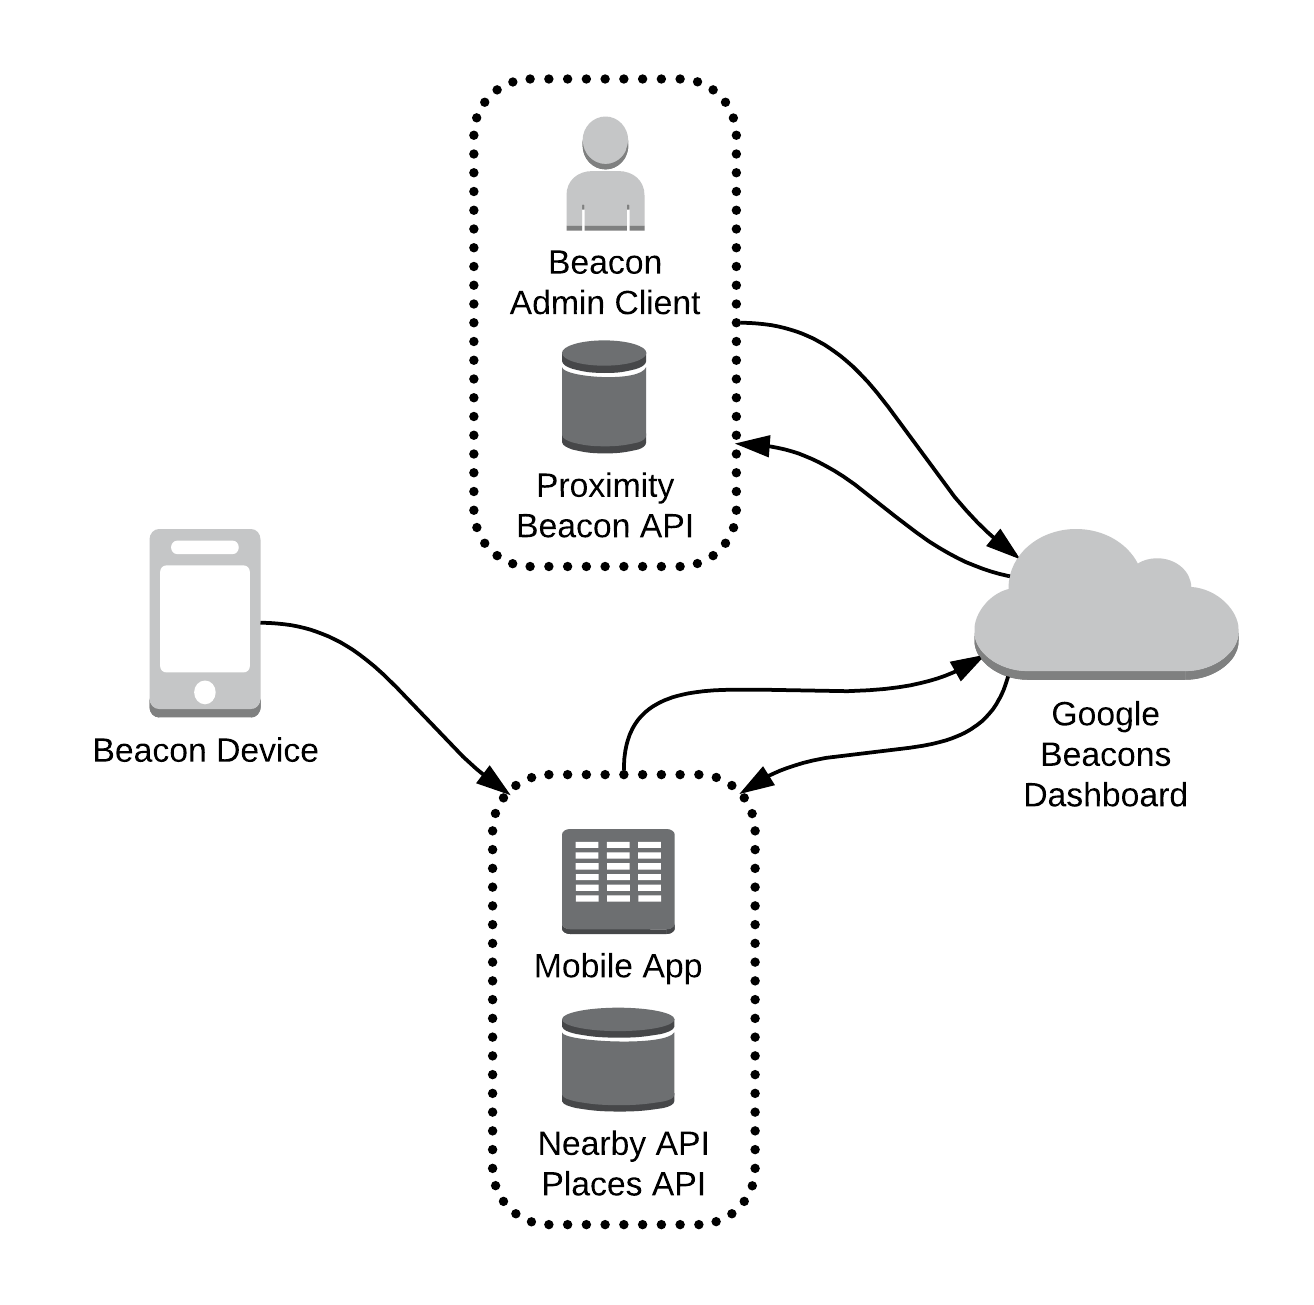 Setting Up Beacons In Android No Beacon Manager App Required How To Build Field Strength Meter Nearby Messages Api Is The For And Ios That Scans Devices Collects Data From Google Cloud Information Attached